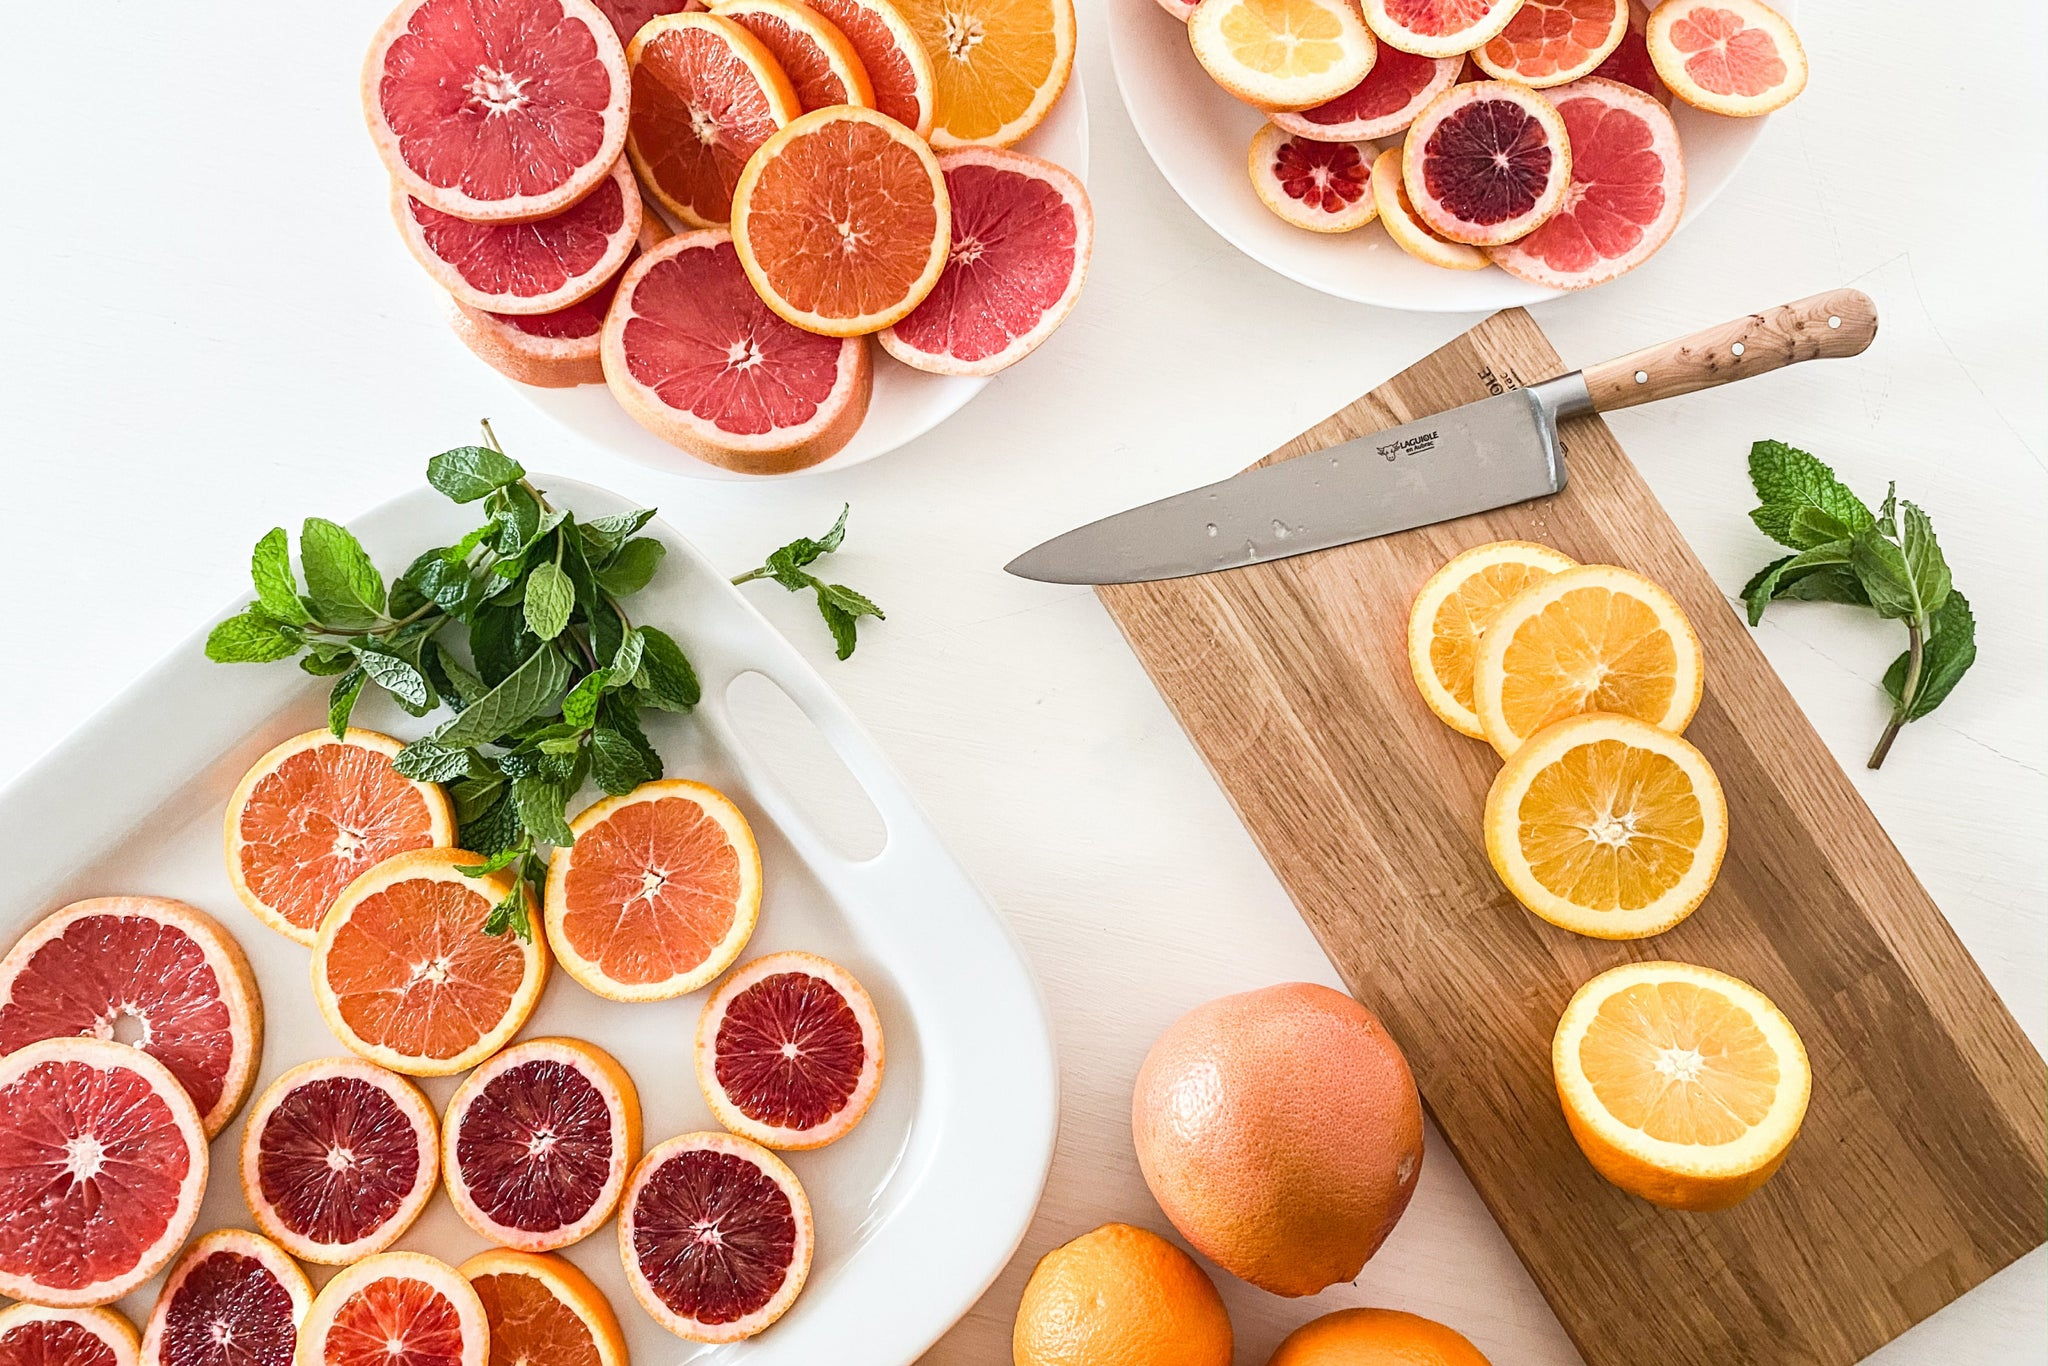 citrus fruits on a cutting board with knife